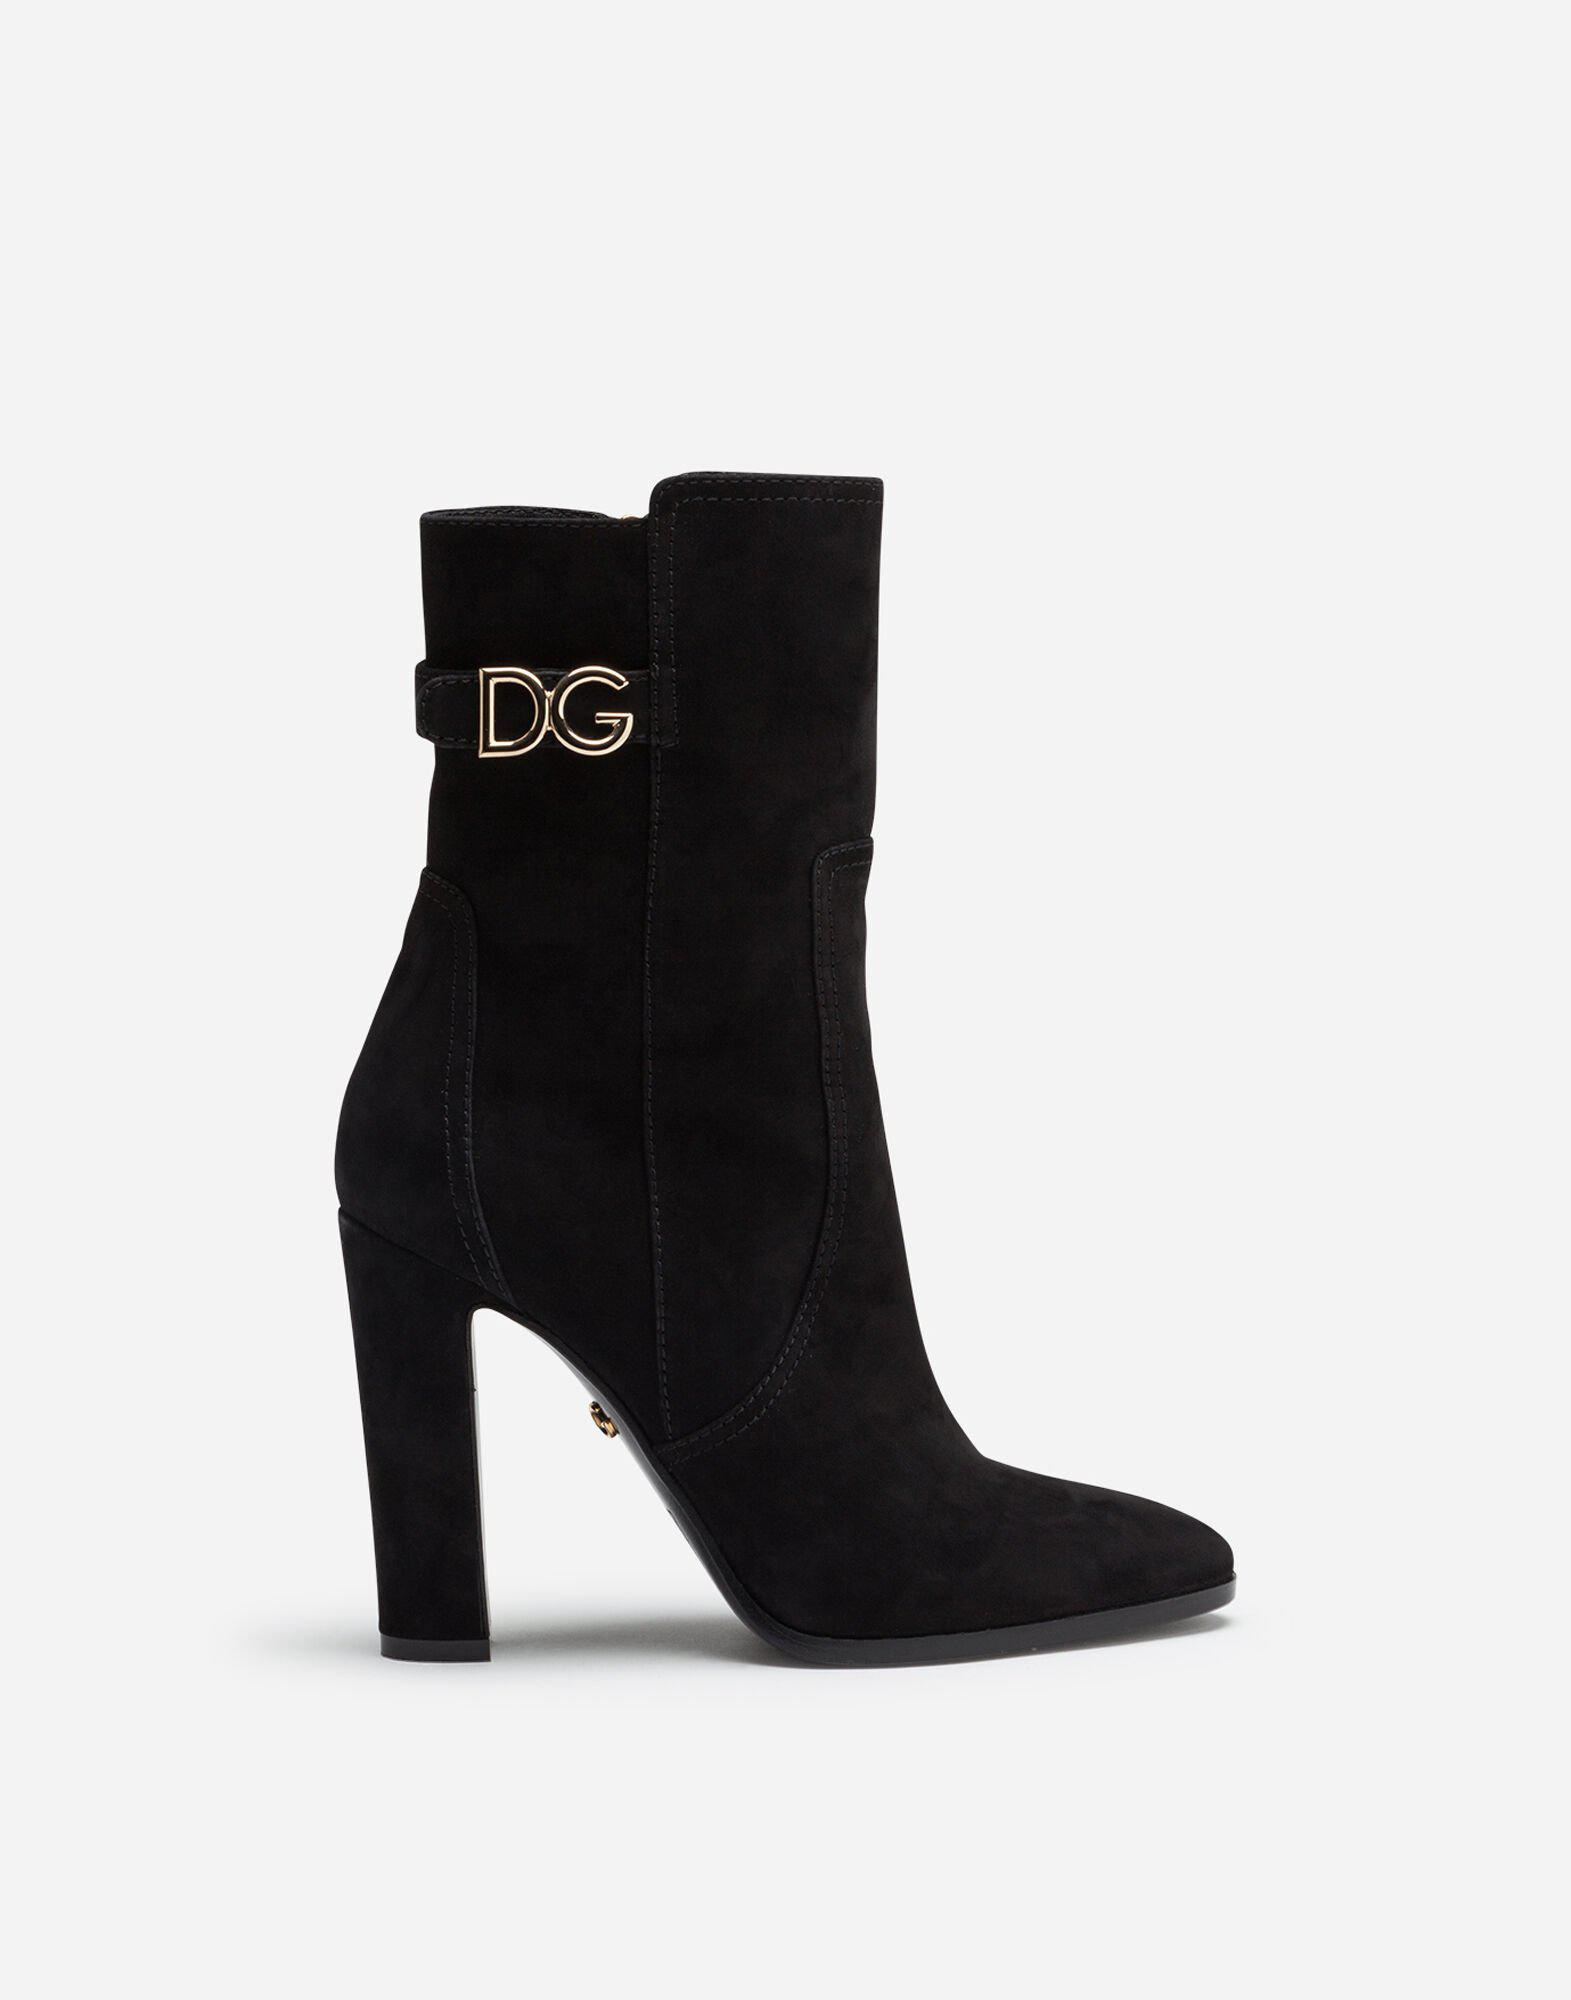 Ankle boots in suede with DG logo